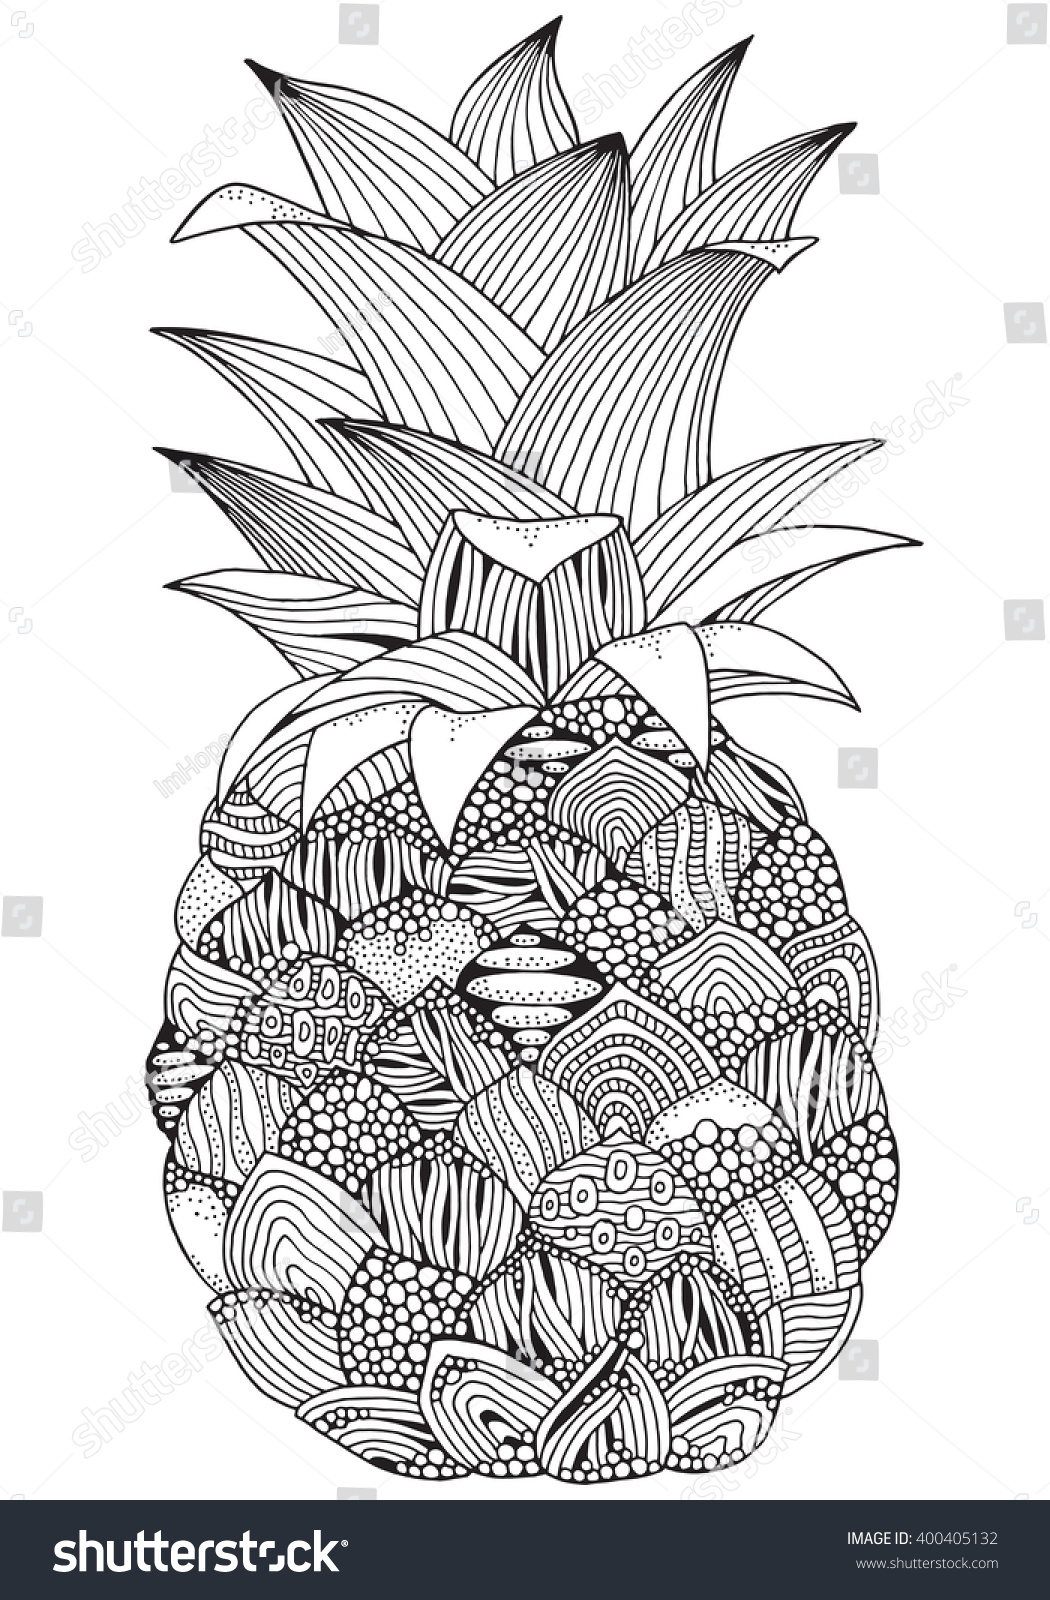 Artistic Pineapple On White Background Handdrawn Stock